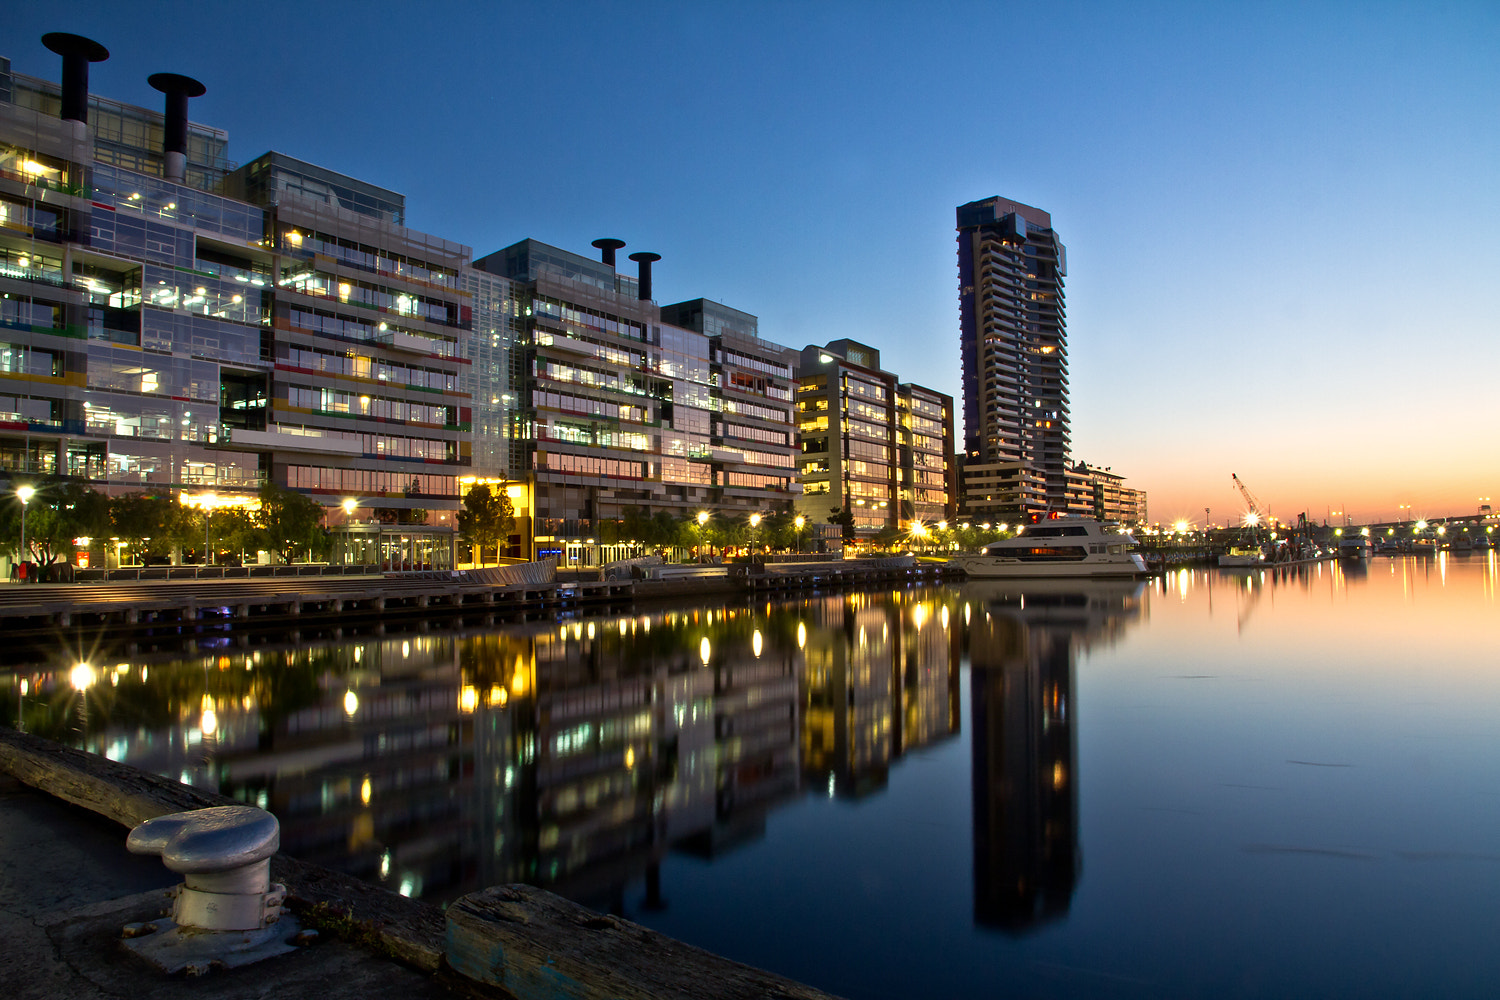 Photograph docklands by jonathan sander on 500px